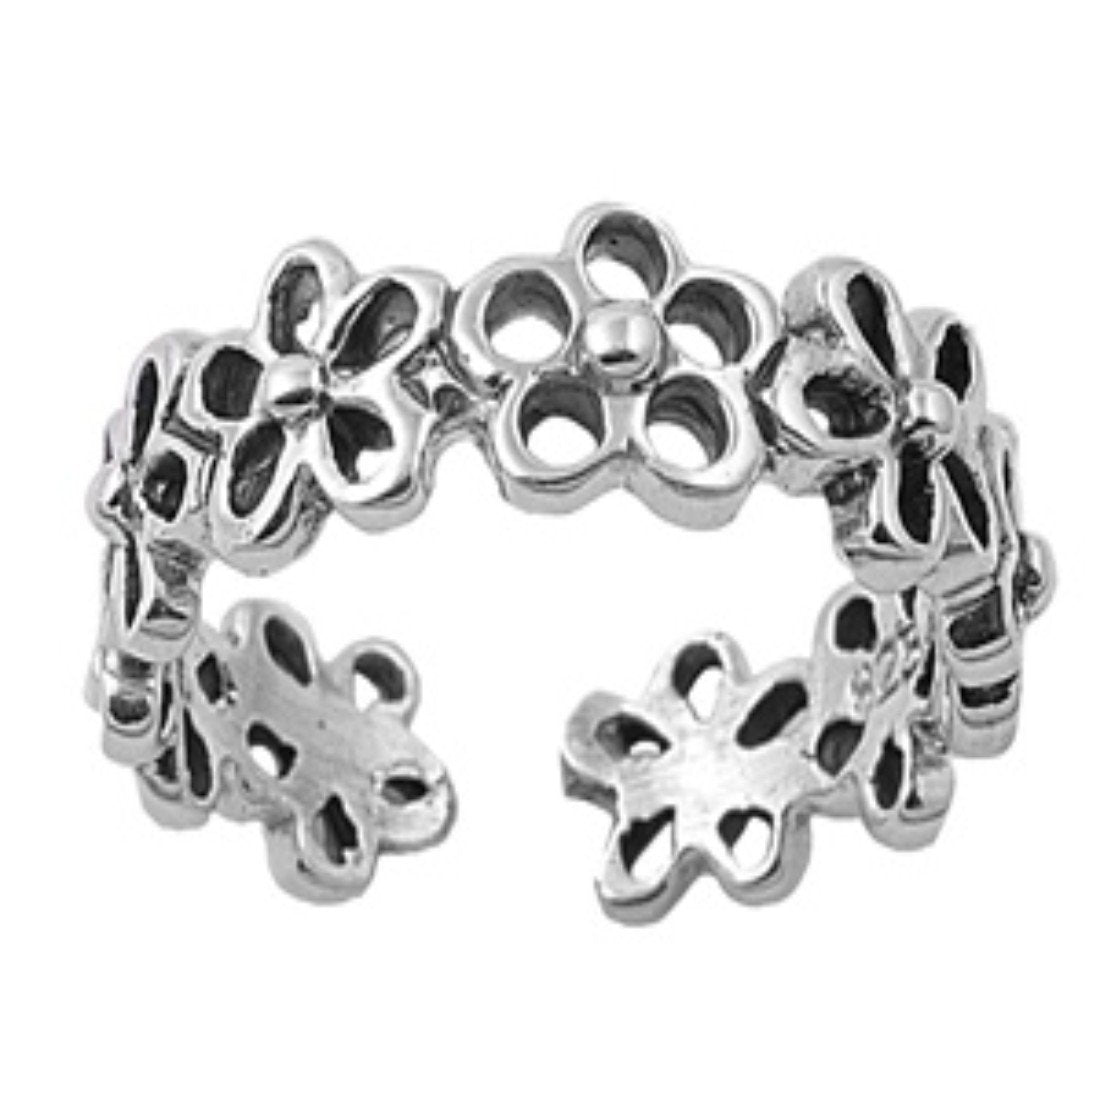 Plumeria Silver Toe Ring Adjustable Band 925 Sterling Silver (5mm)